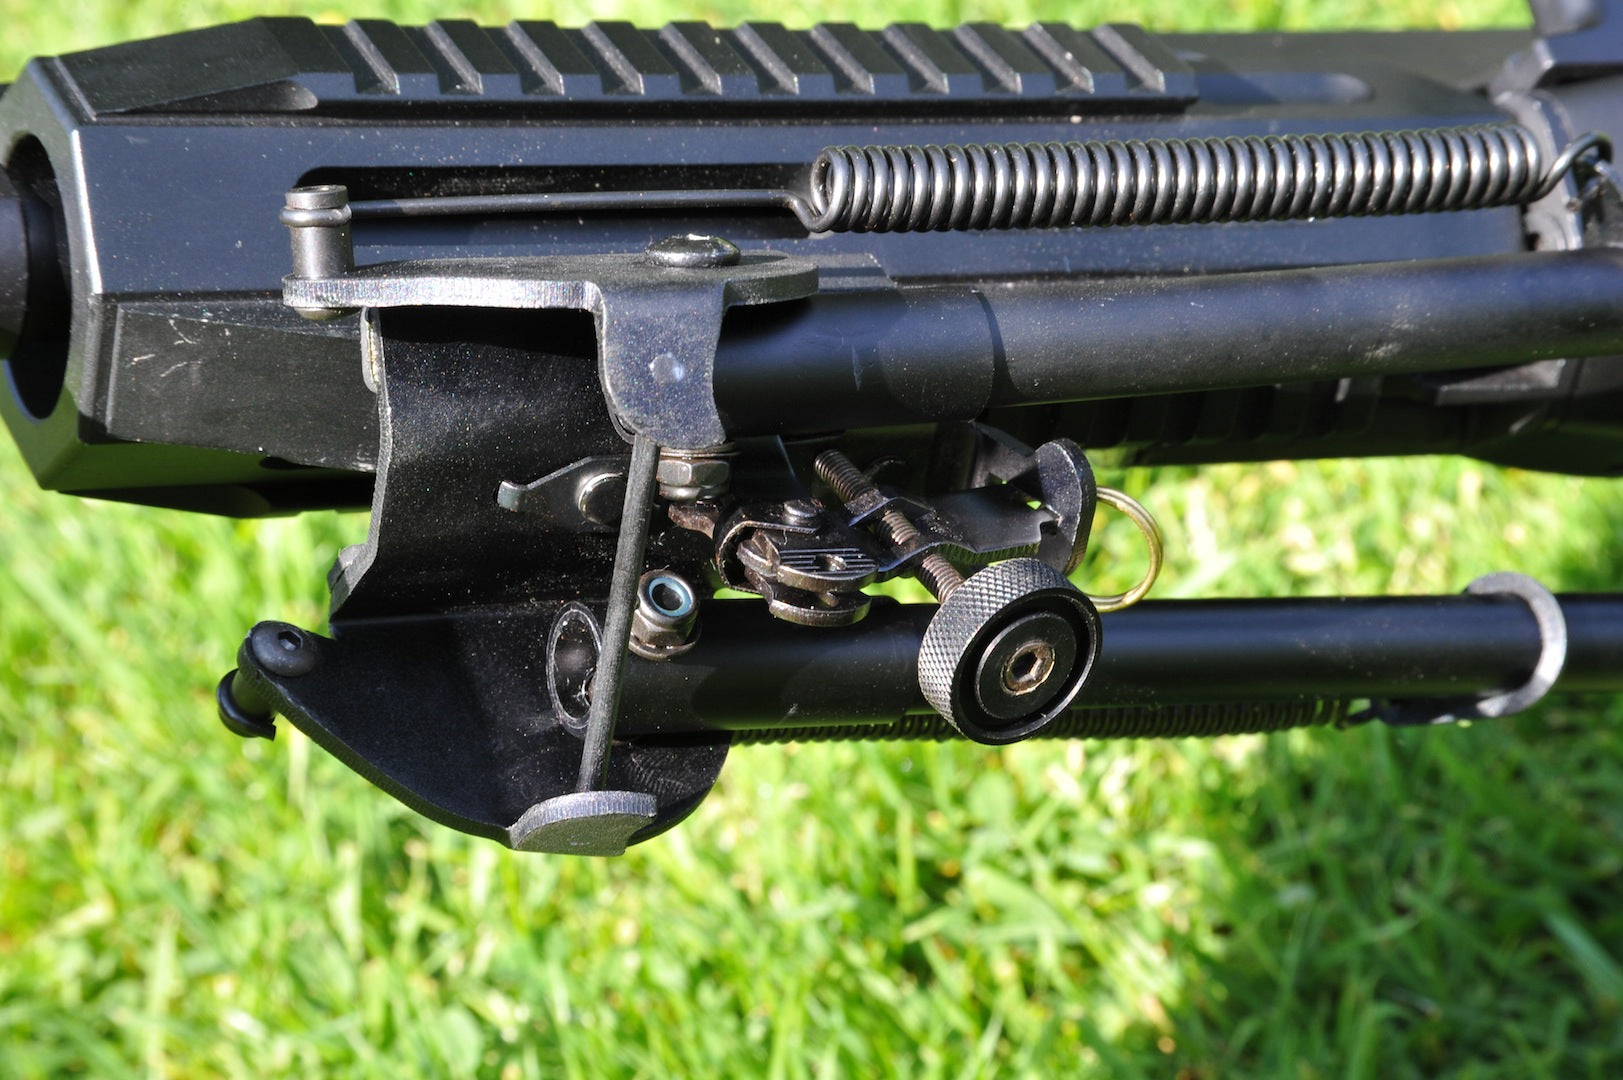 Bi-Pod Spring Loaded Telescopic Legs a Long 9-15 inches for use on most guns.